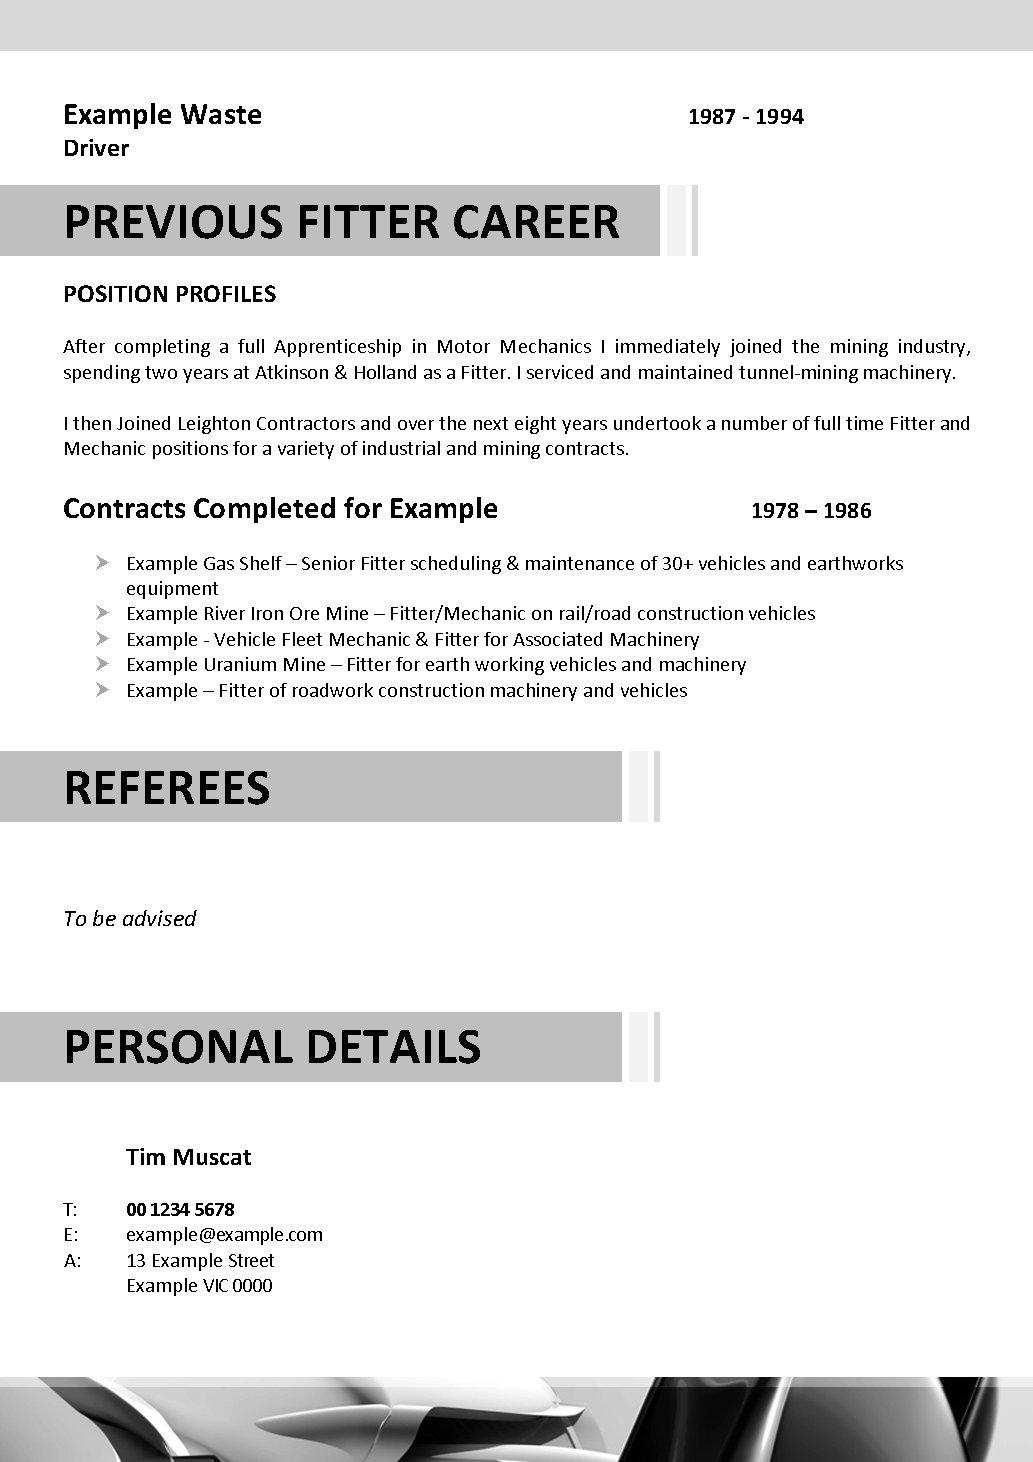 resume for working in food industry resume builder resume for working in food industry food service resume sample job interview career guide resume examples